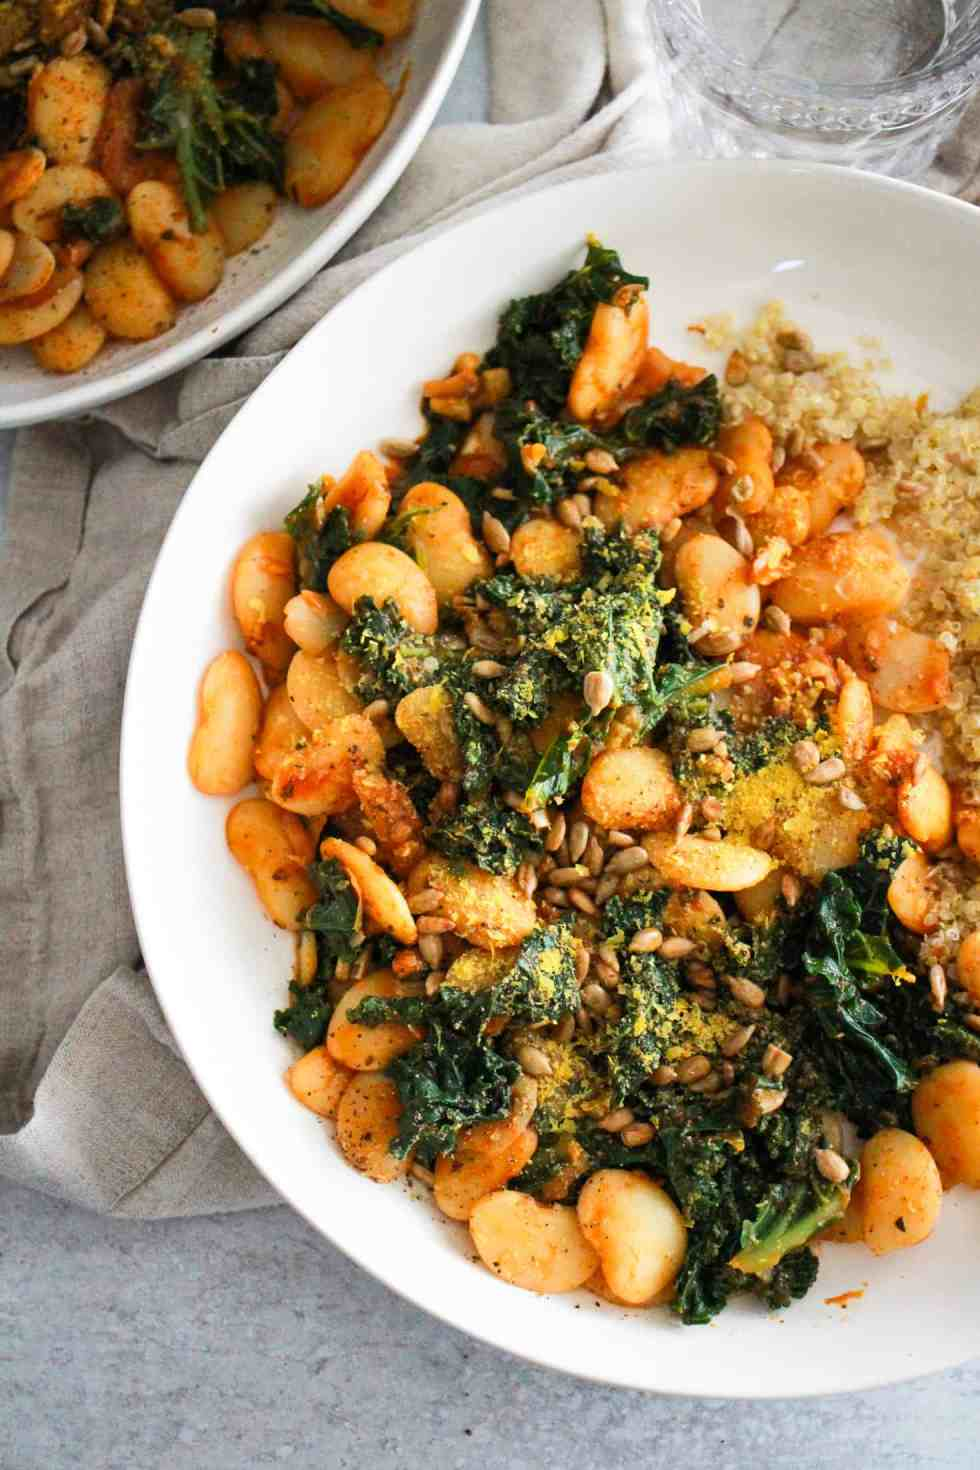 Closeup image of butter beans recipe with kale and quinoa.